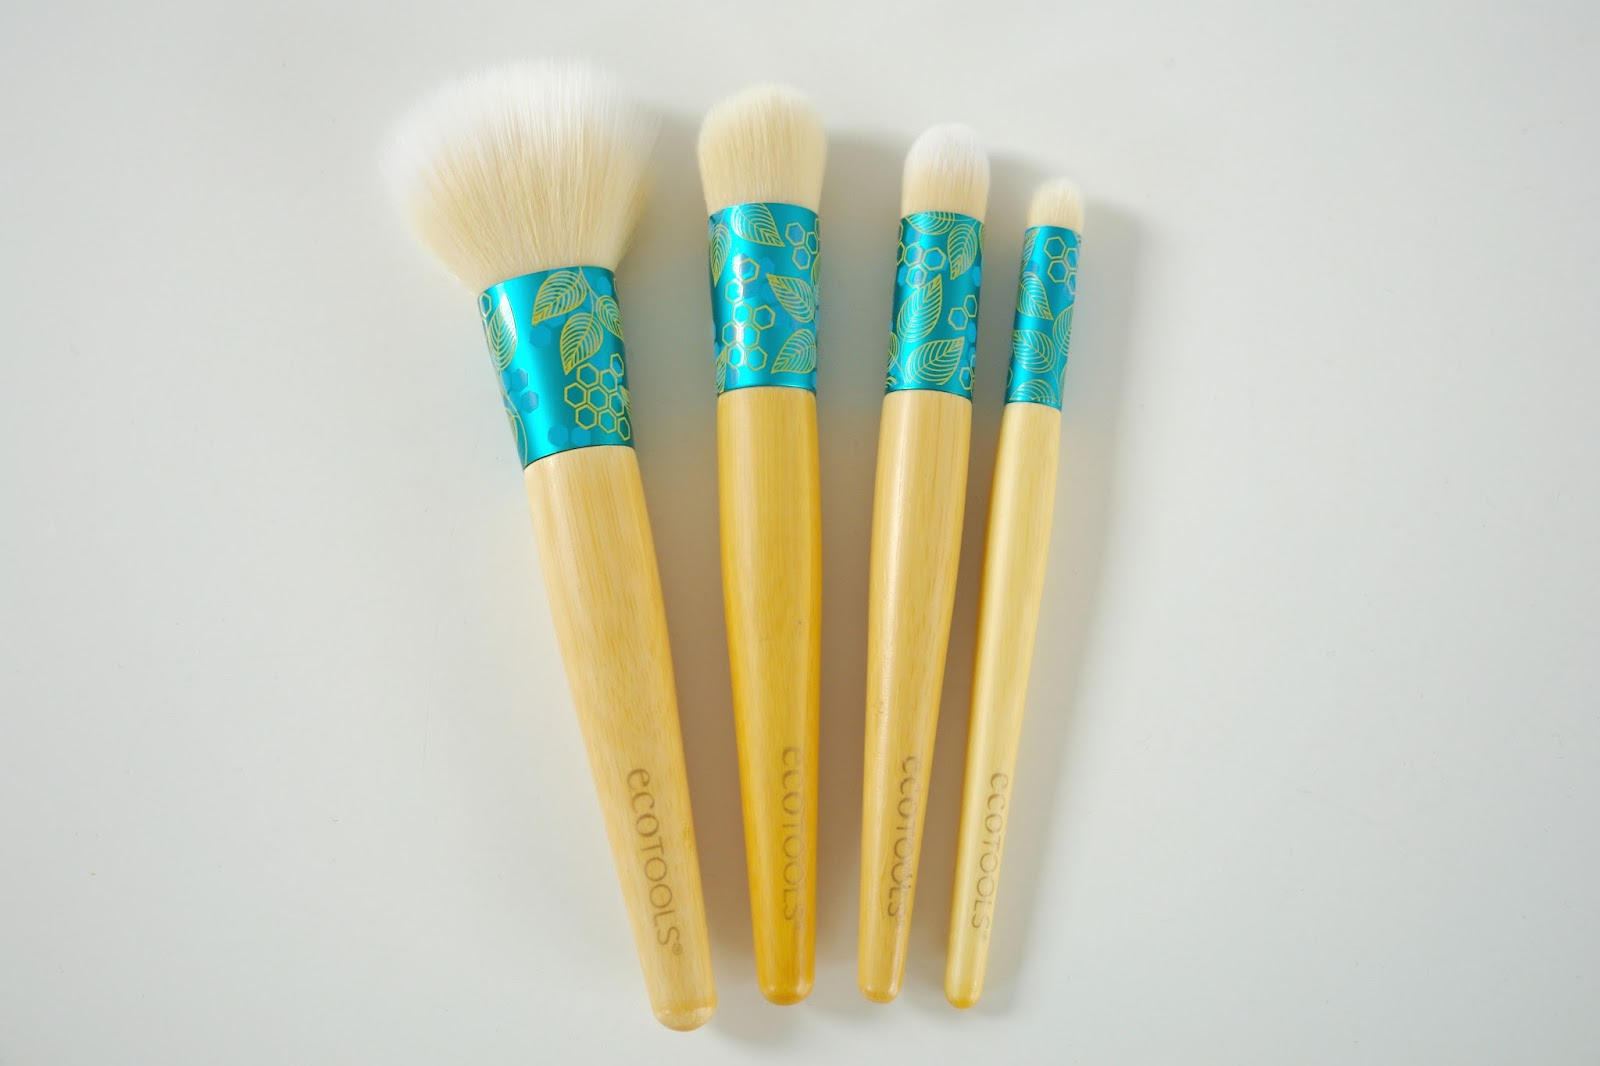 New EcoTools makeup brushes & a hairbrush, beauty, brushes, EcoTools, hair, make up, review, EcoTools Complexion Collection, Mattifying Finish Brush, Skin Perfecting Brush, Eye Perfecting Brush, Correcting Concealer Brush, EcoTools Ultimate Air Dryer